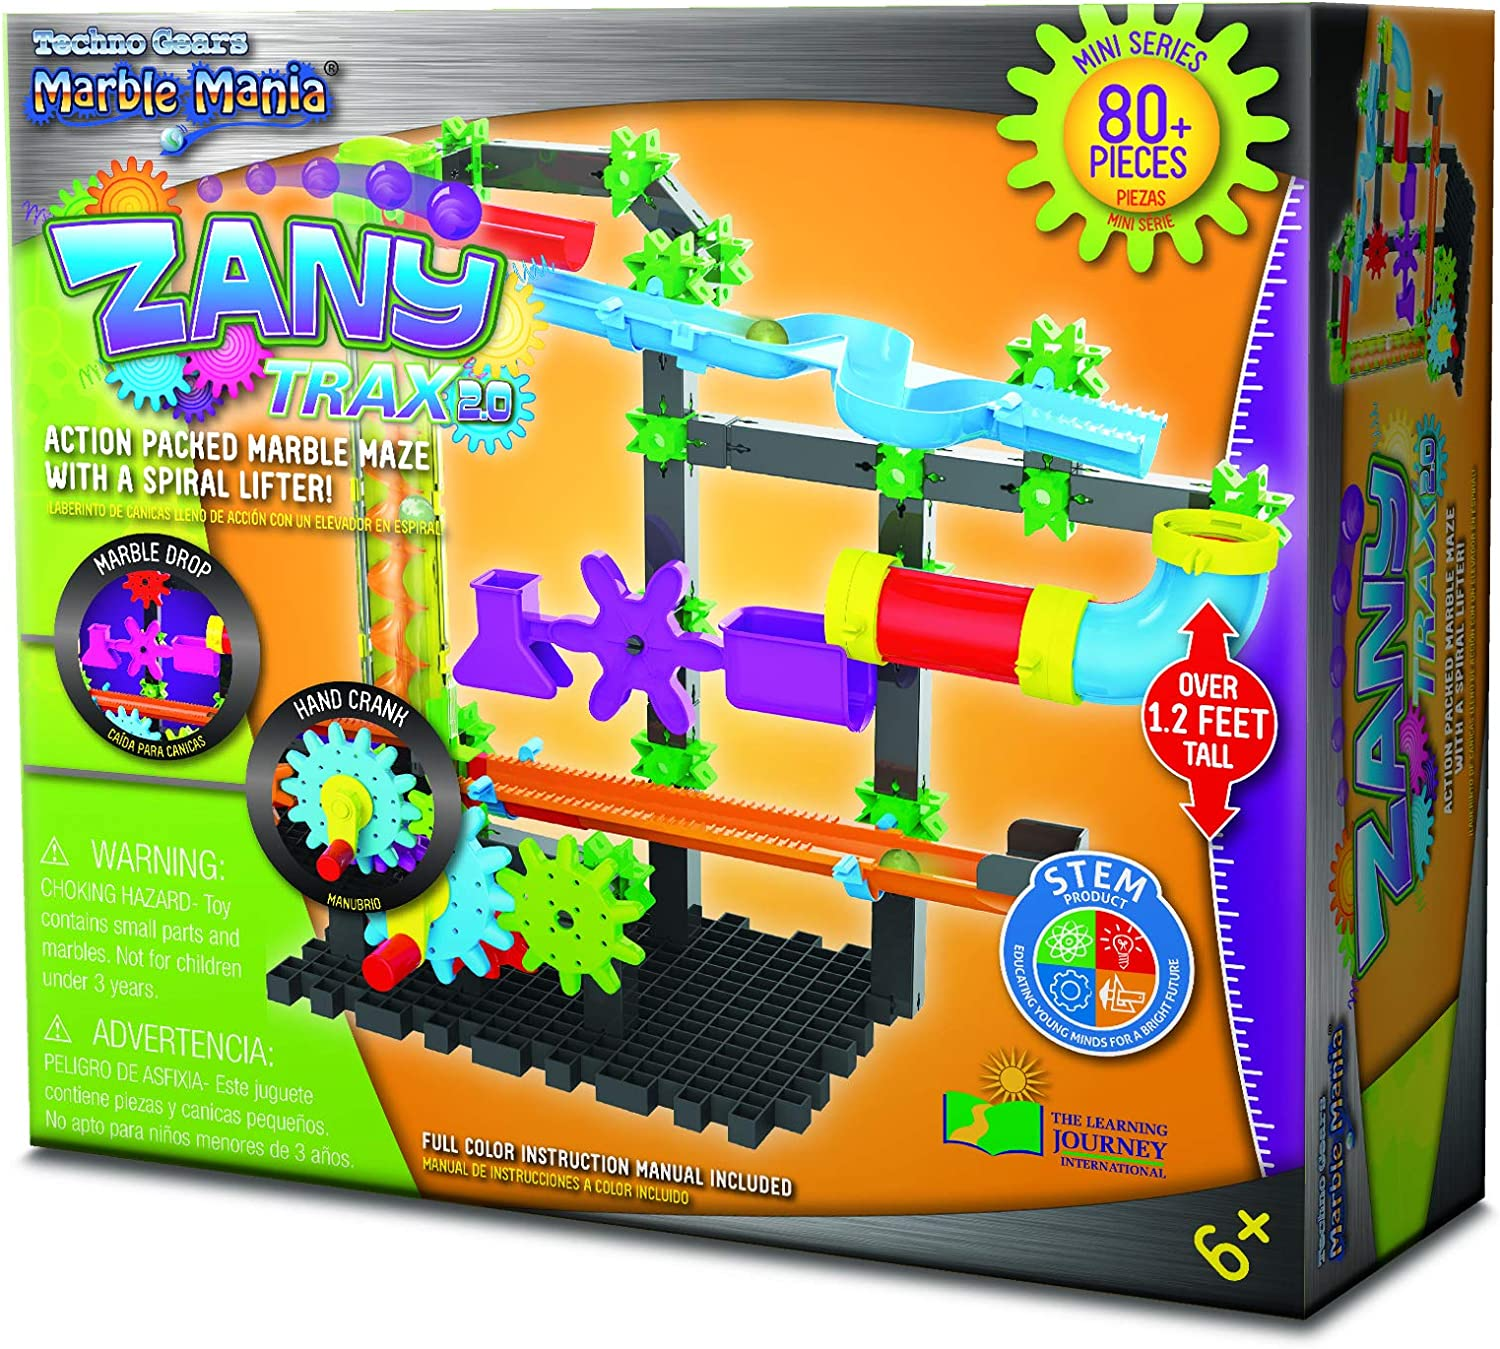 Pieces 80 Techno Gears Marble Mania Zany Trax 4.0 Action Packed Marble Maze with A Spriral Lifter